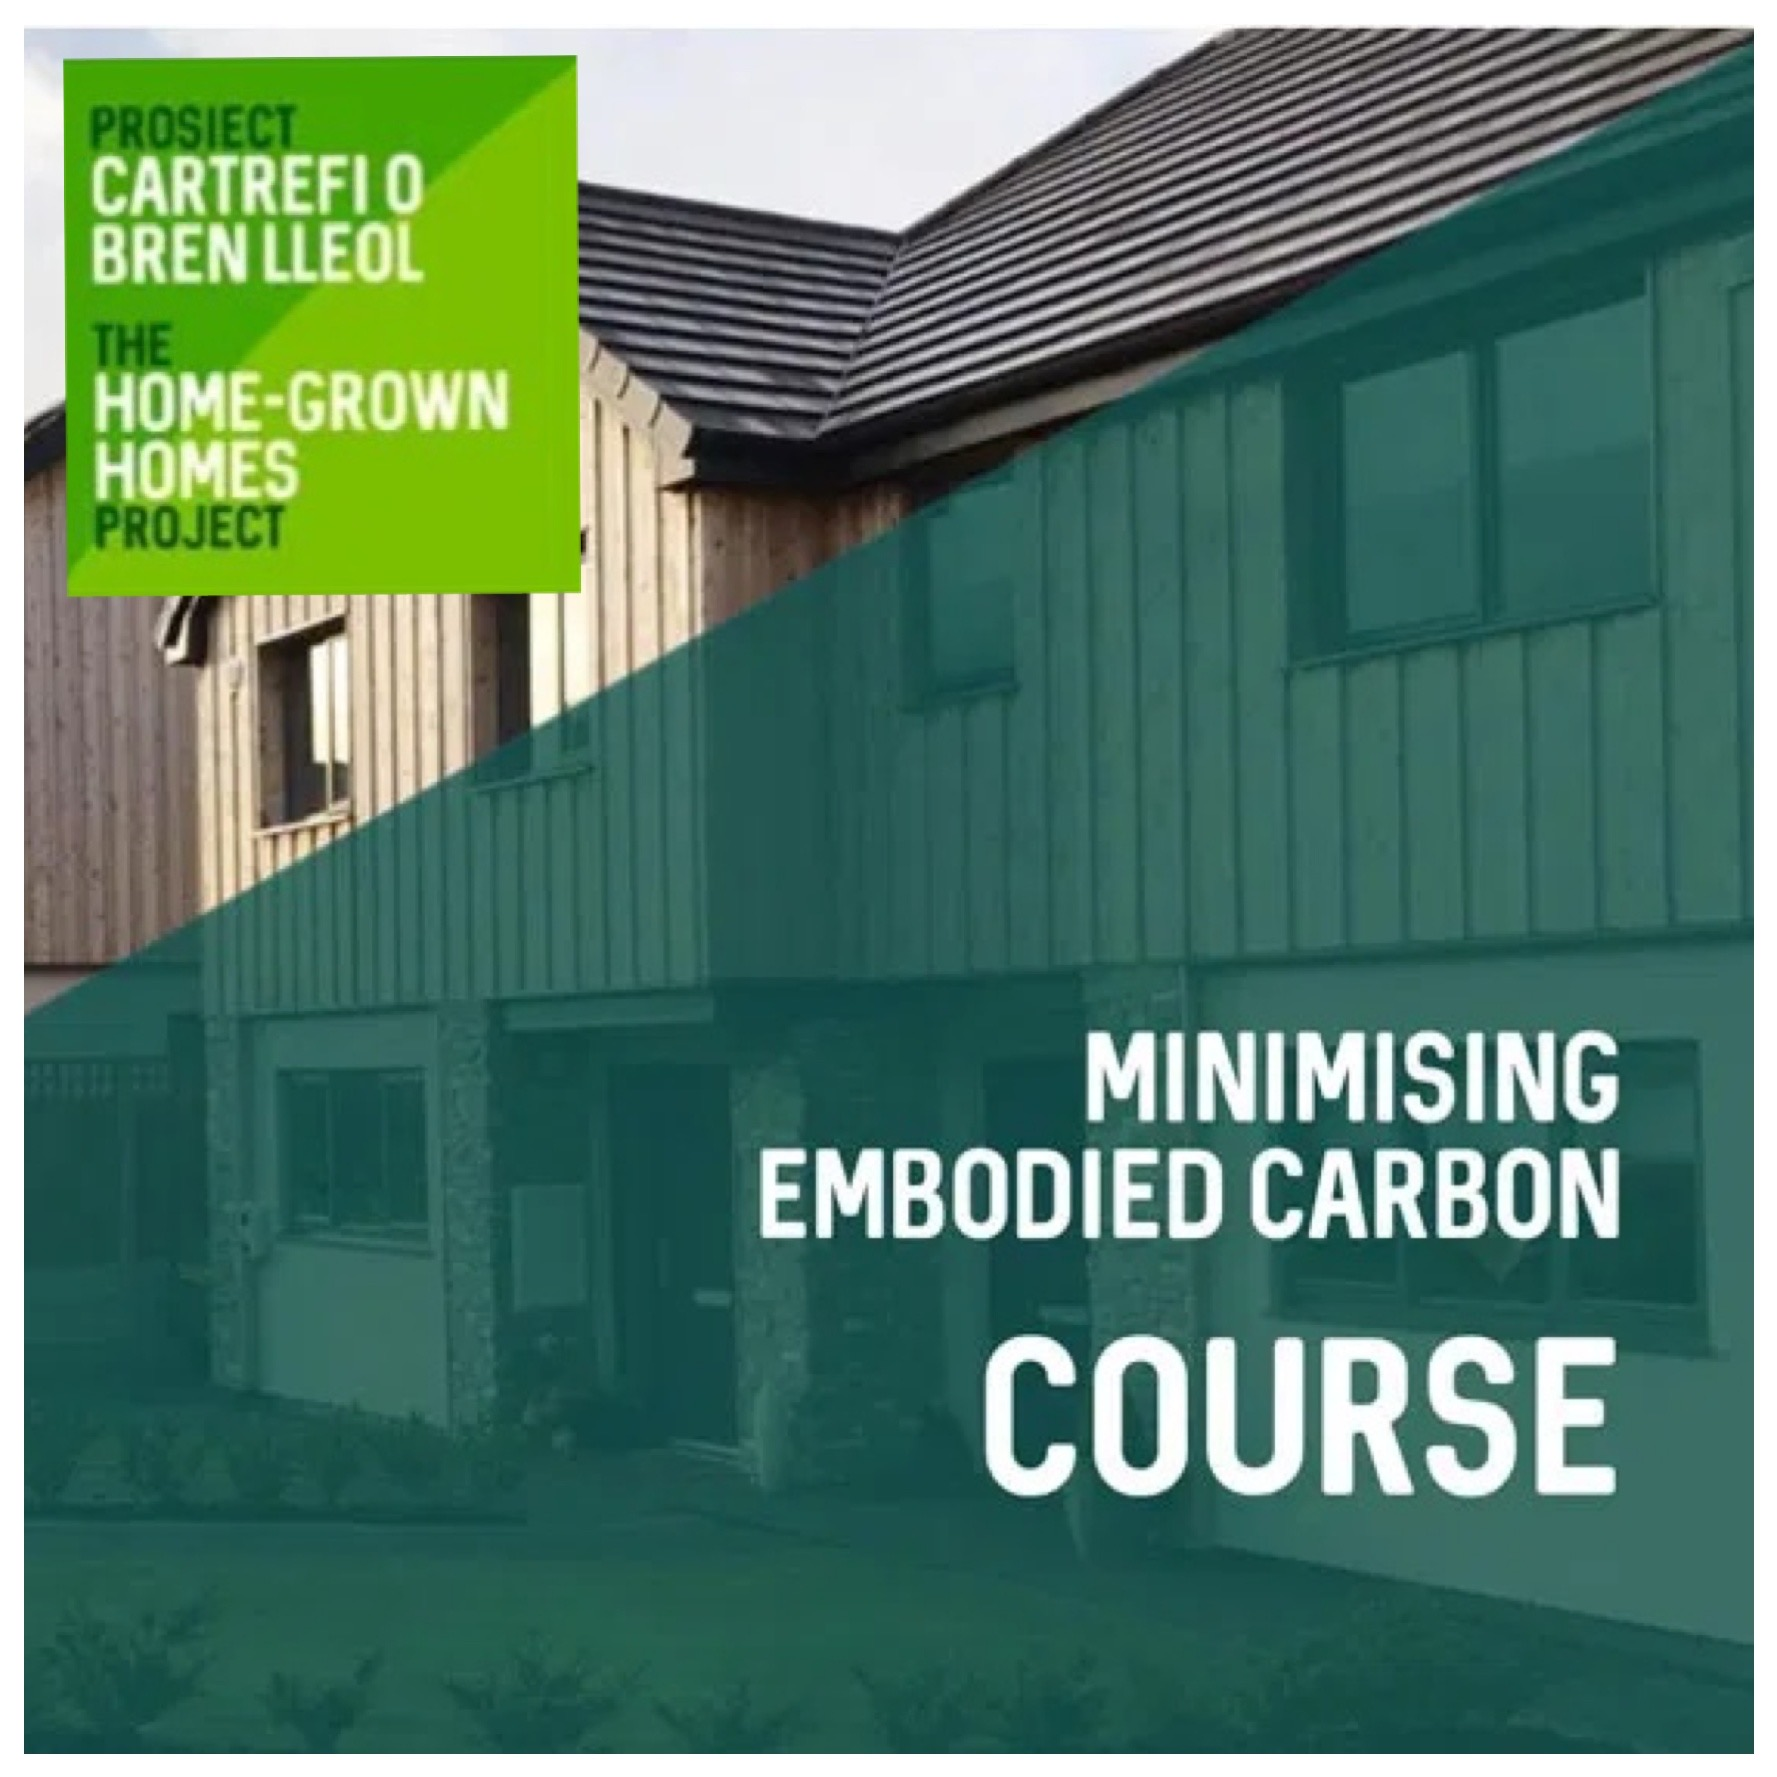 Minimising Embodied Carbon Course